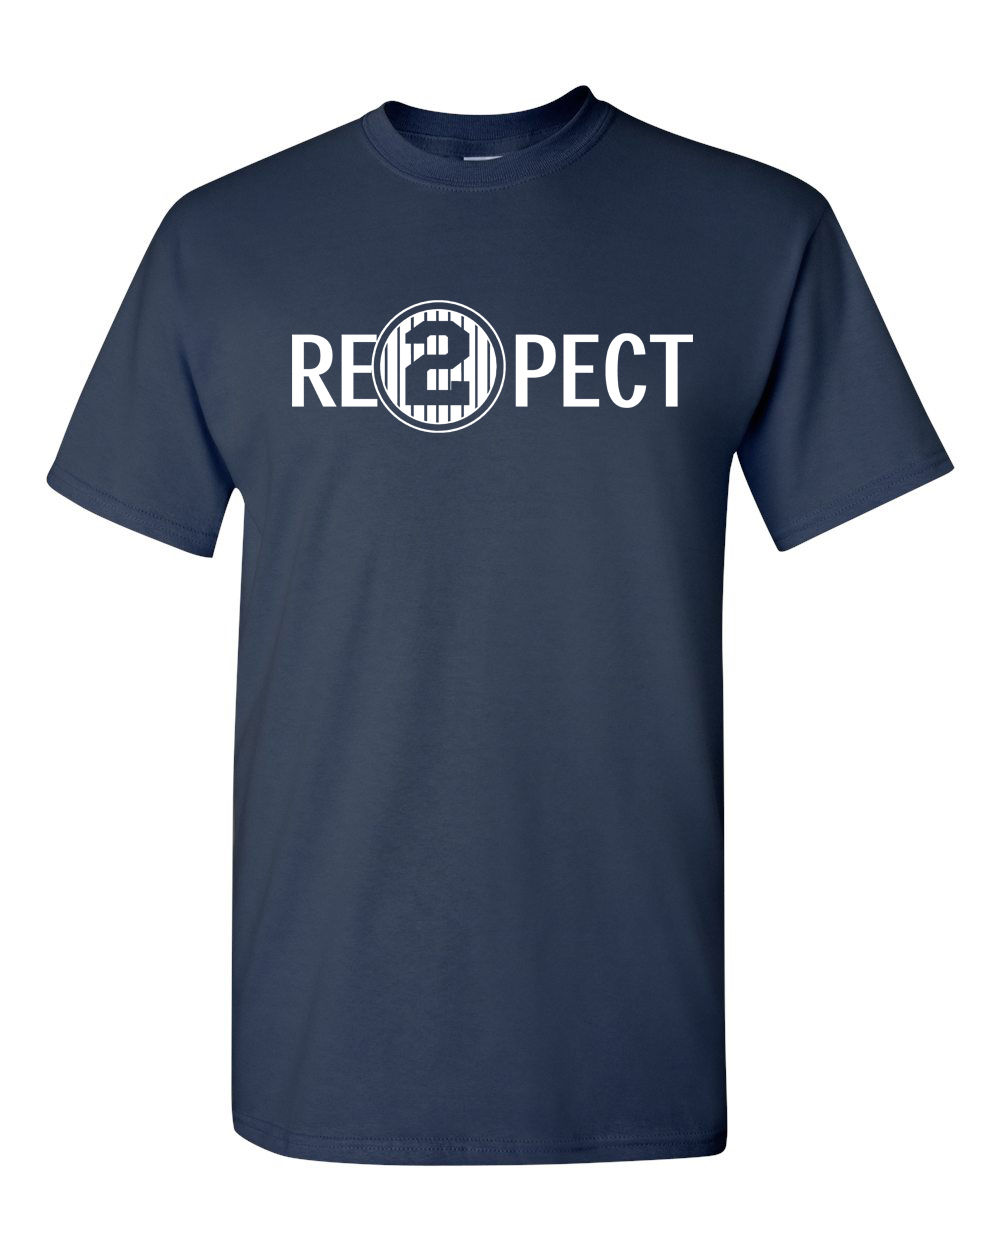 LEQEMAO Quality Print New Summer Style Cotton Respect 2 Re2pect Derek Jeter Captain Ny Yankees Mens Tee Shirt 1173 ...